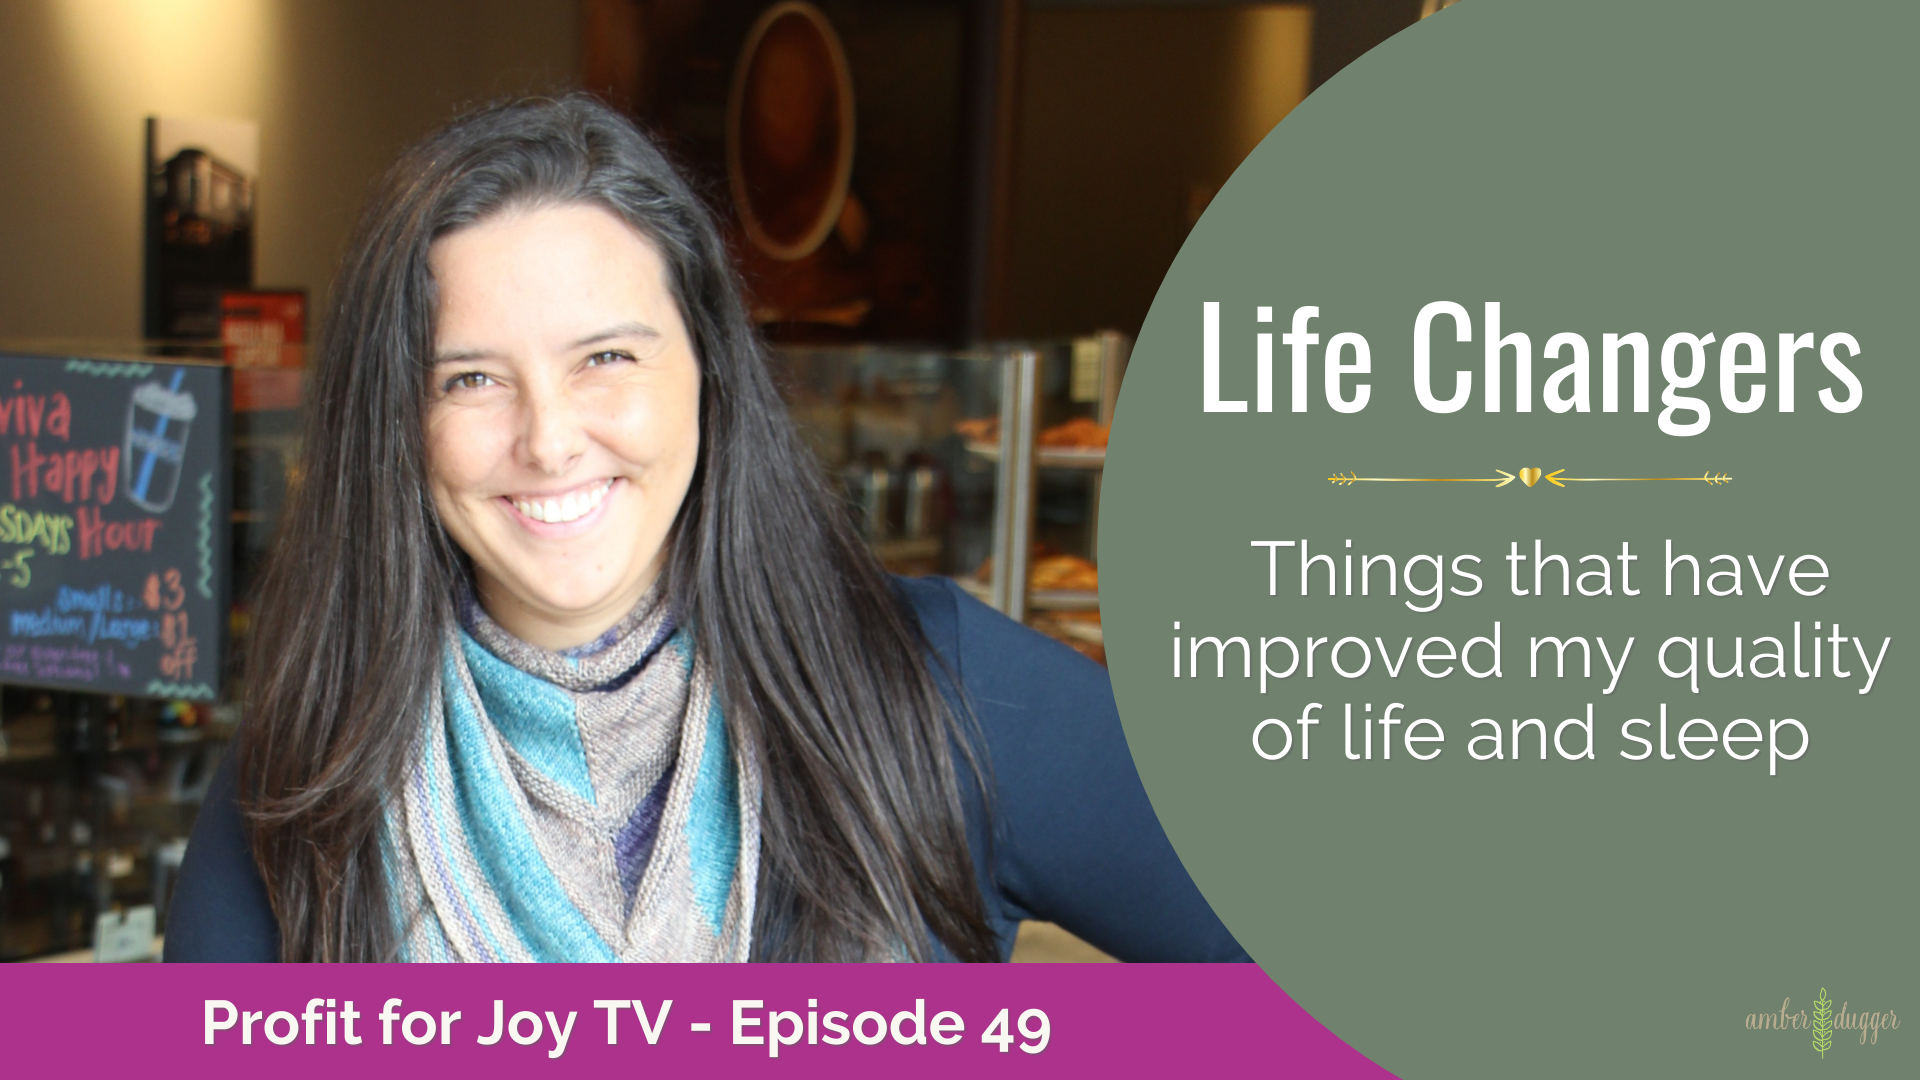 Life Changers – Things that have improved my quality of life and sleep